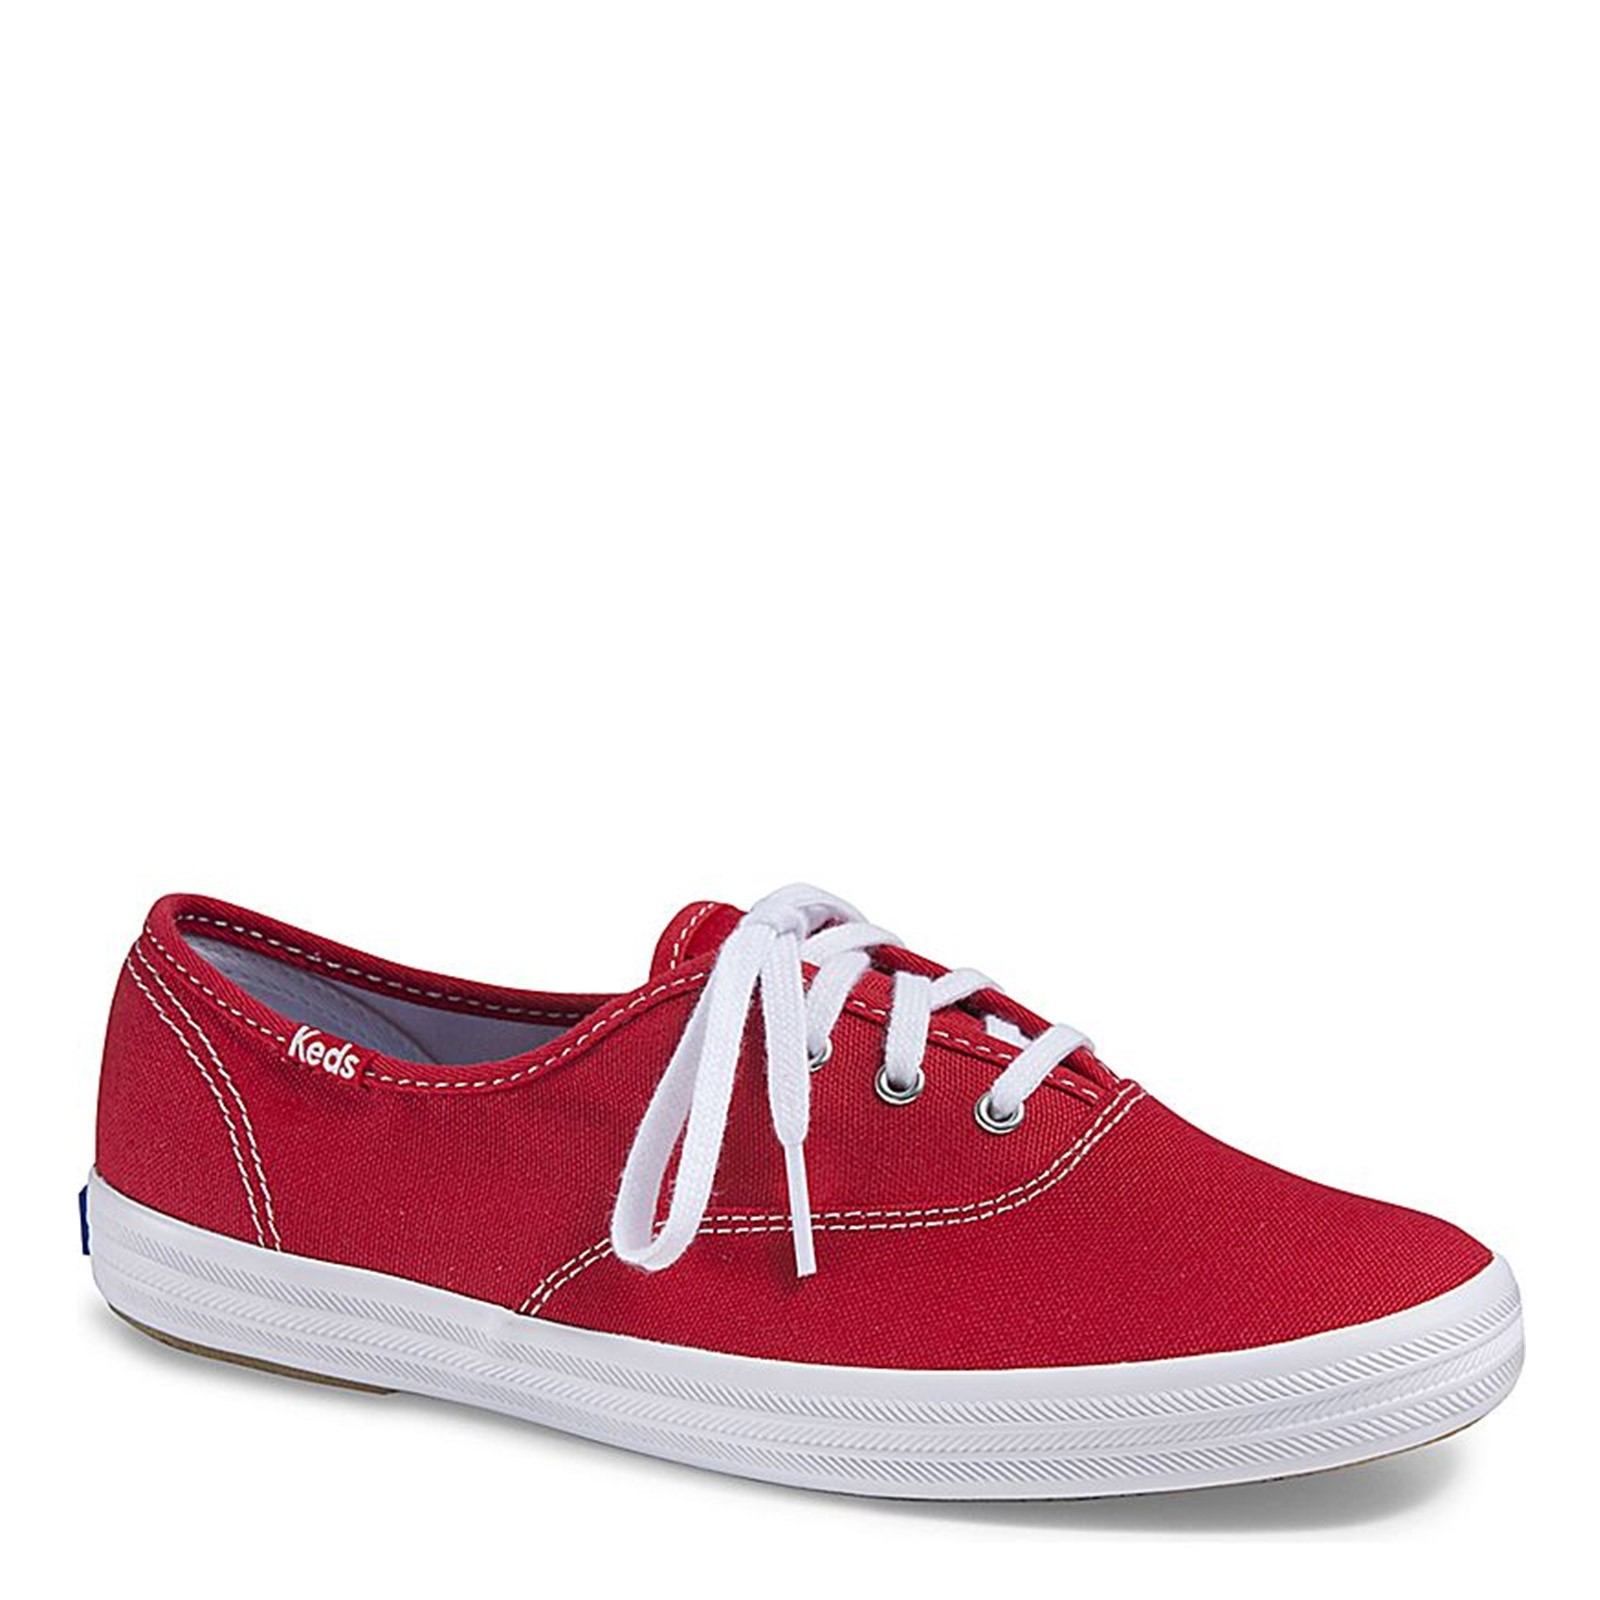 Women's Keds, Champion Sneaker